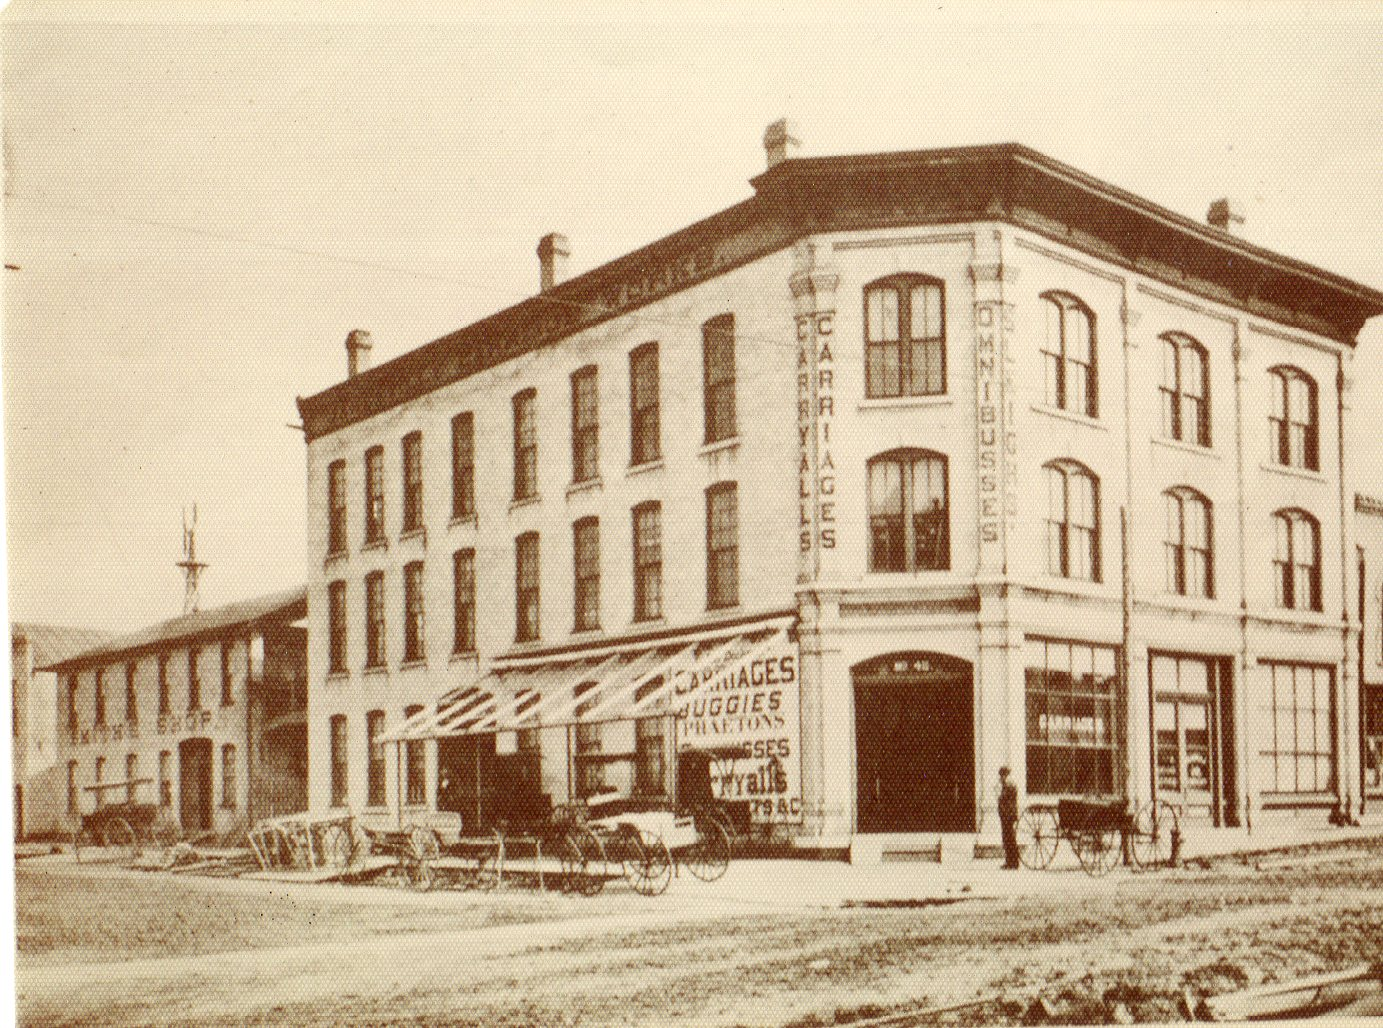 Hodge and Buchholz Carriage Factory as it once looked.